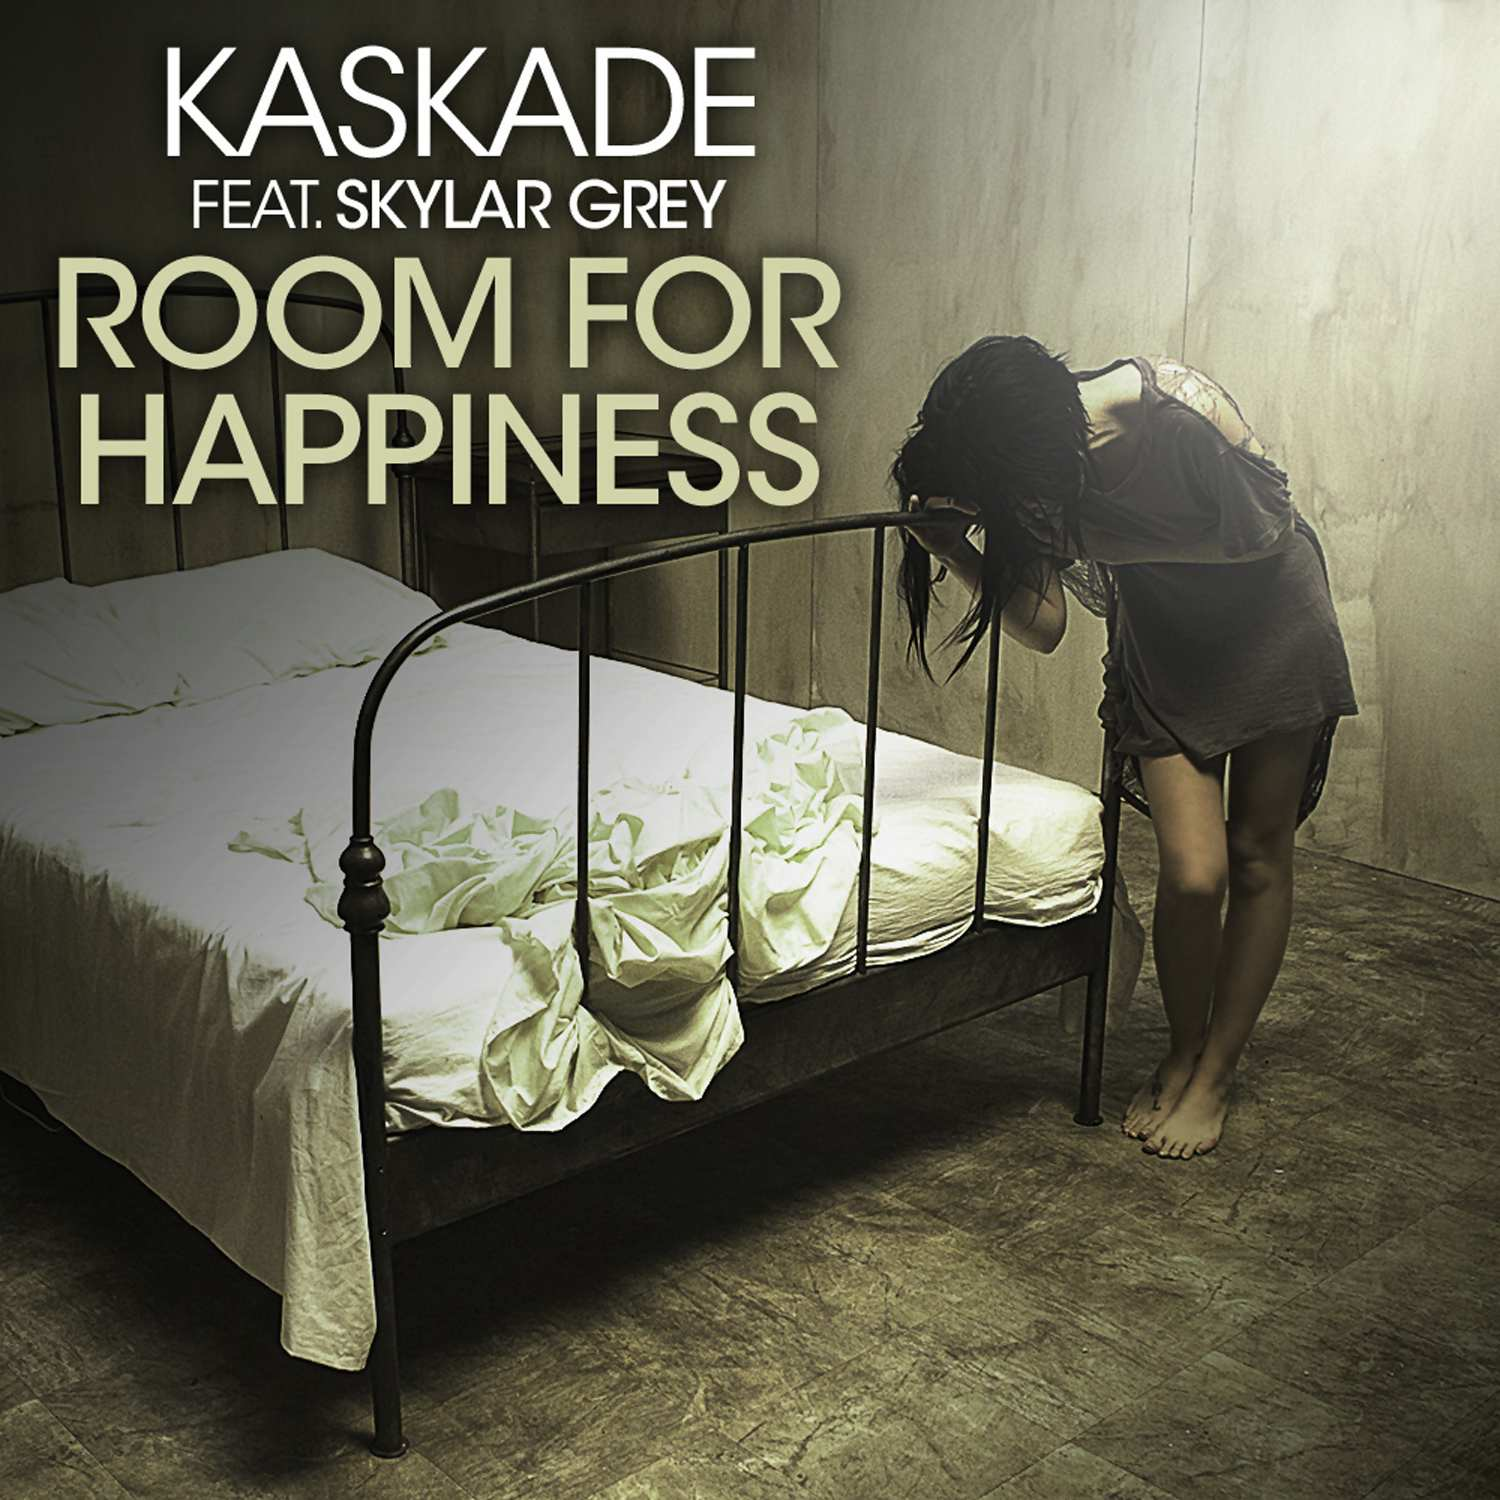 Kaskade feat. Skylar Grey - Room For Happiness (Gregori Klosman Remix)